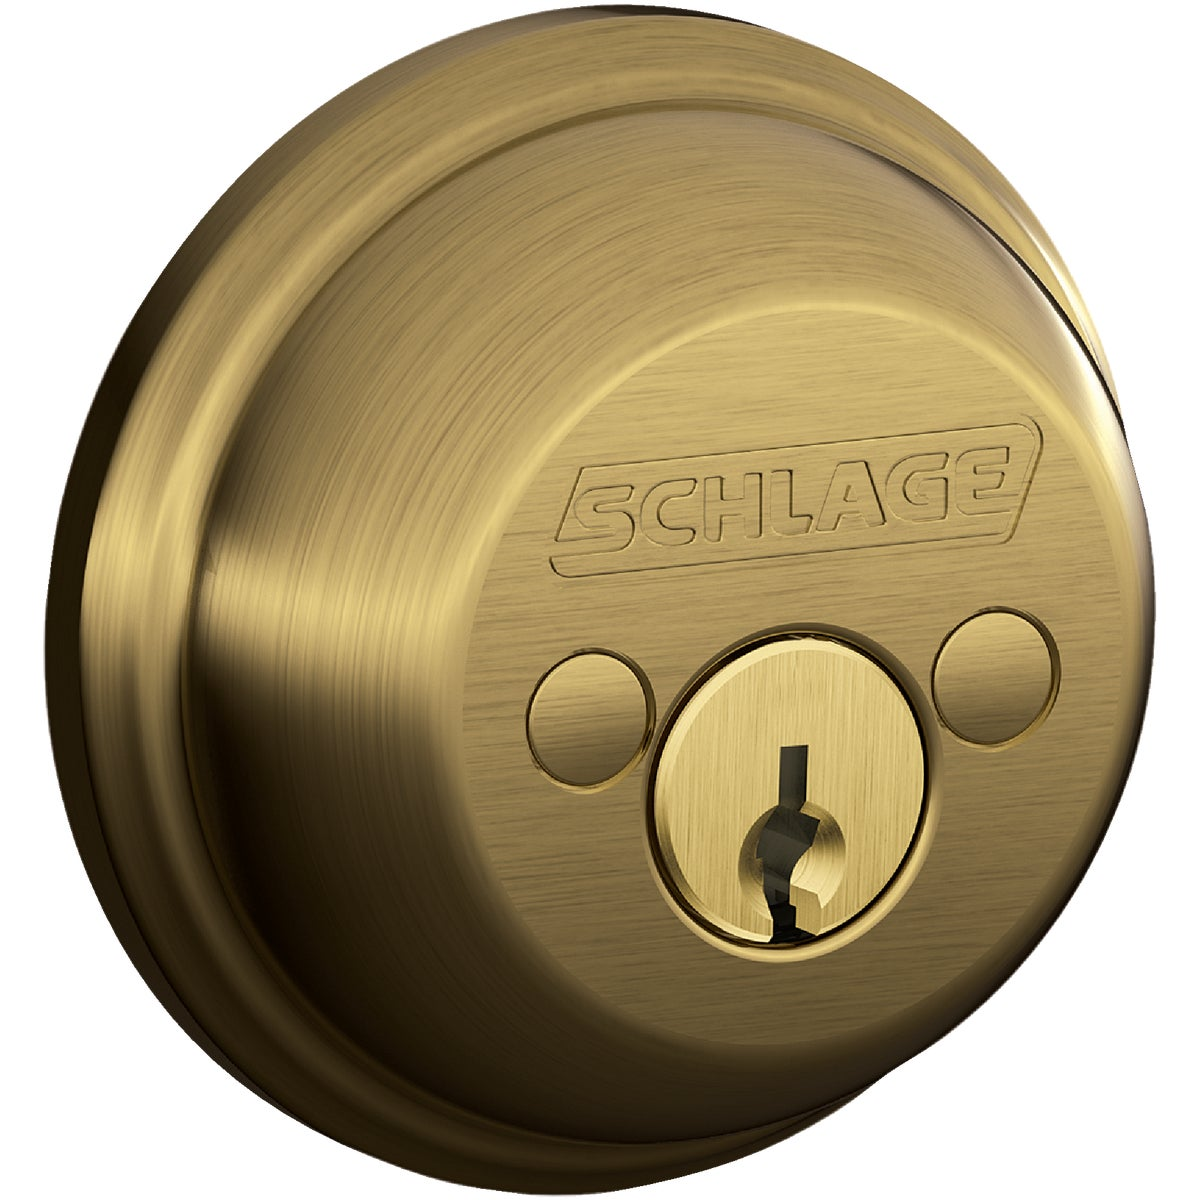 AB 2CYL DEADBOLT - B62NV609 by Schlage Lock Co